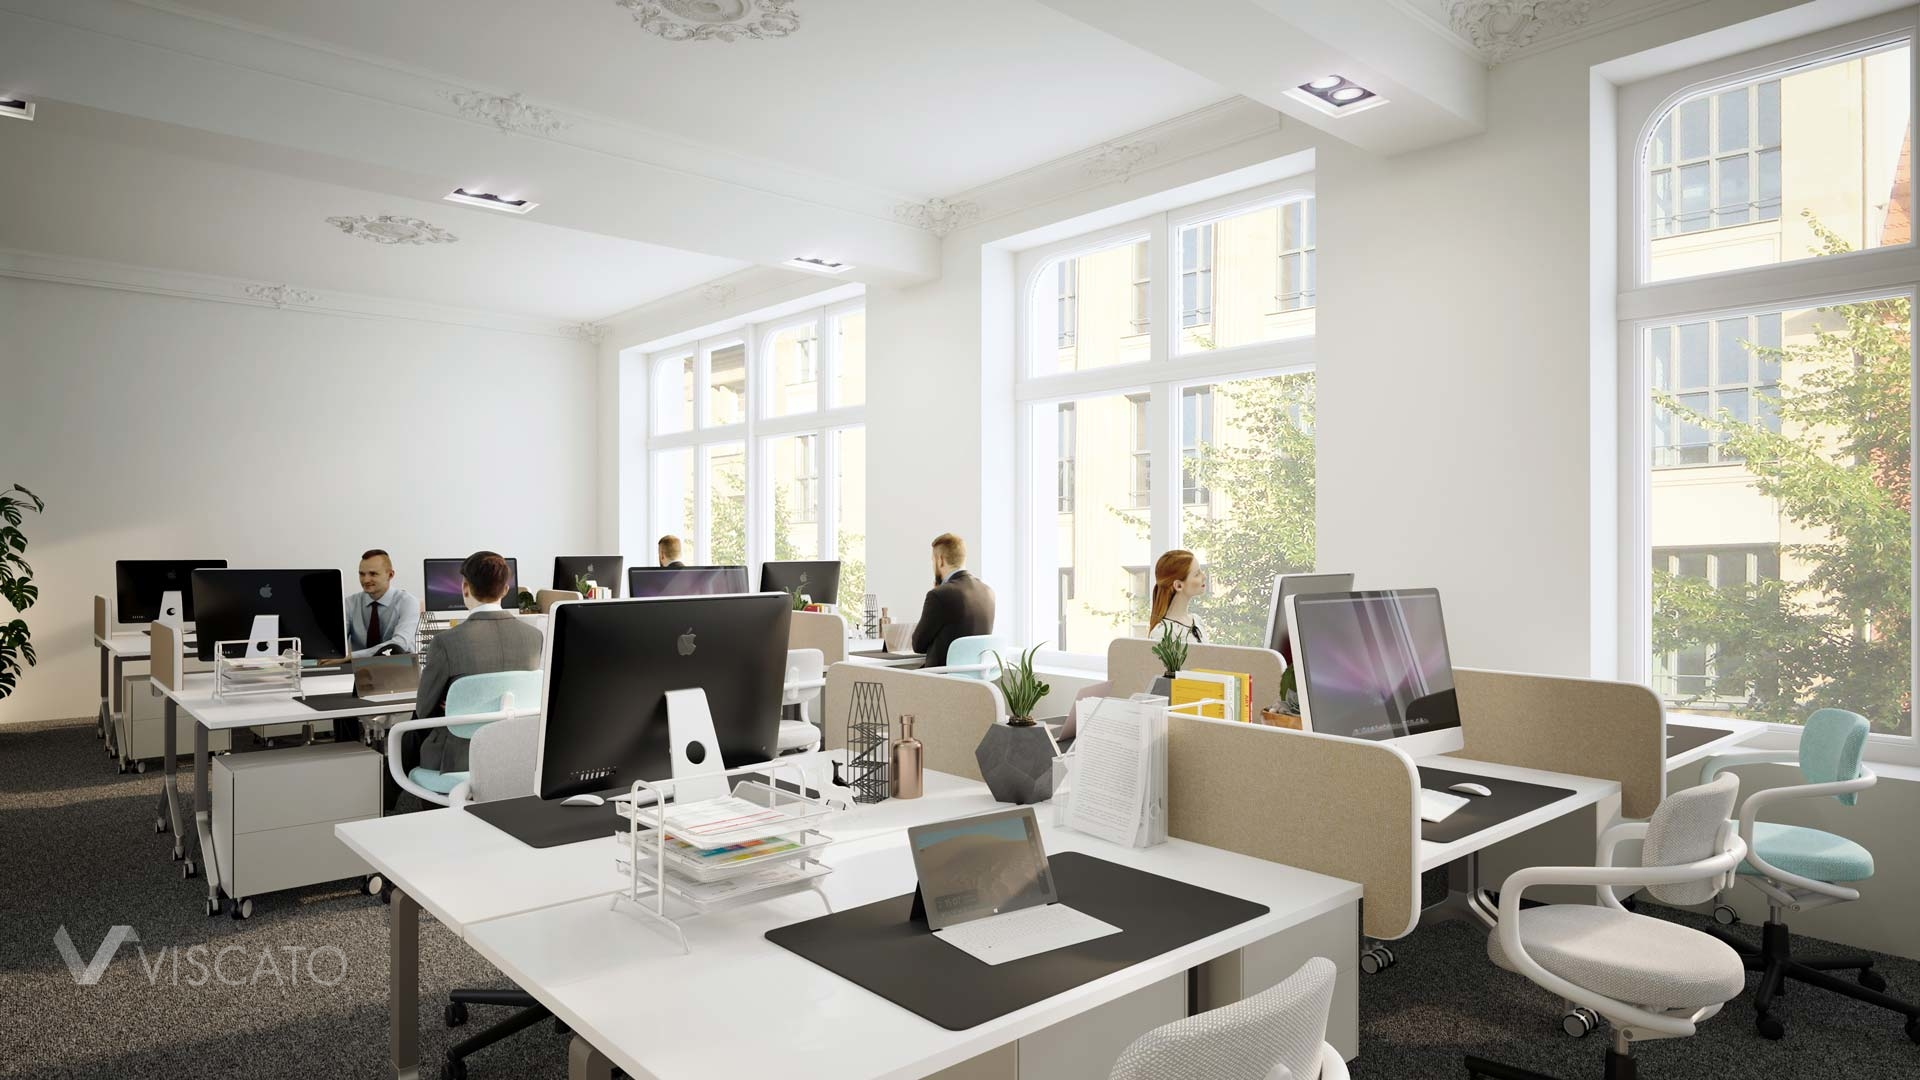 open space office interiors in 3d